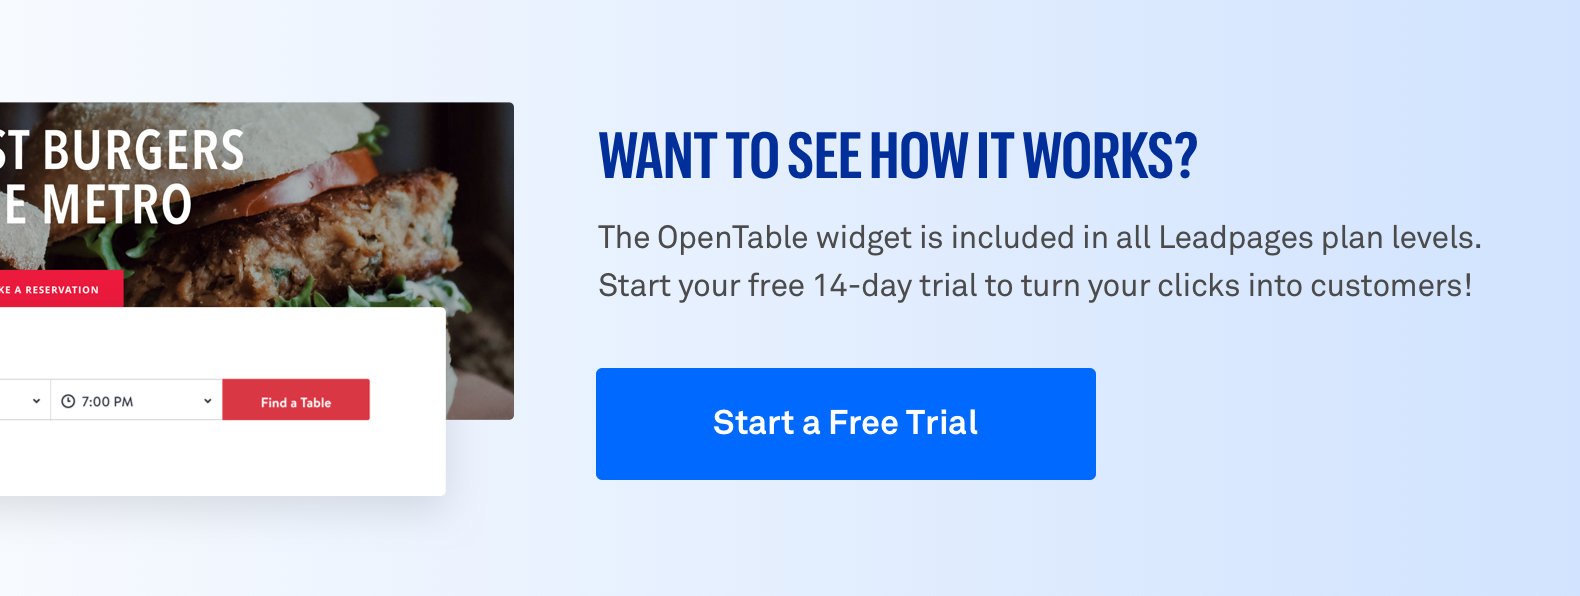 opentable landing page leadpage reservation